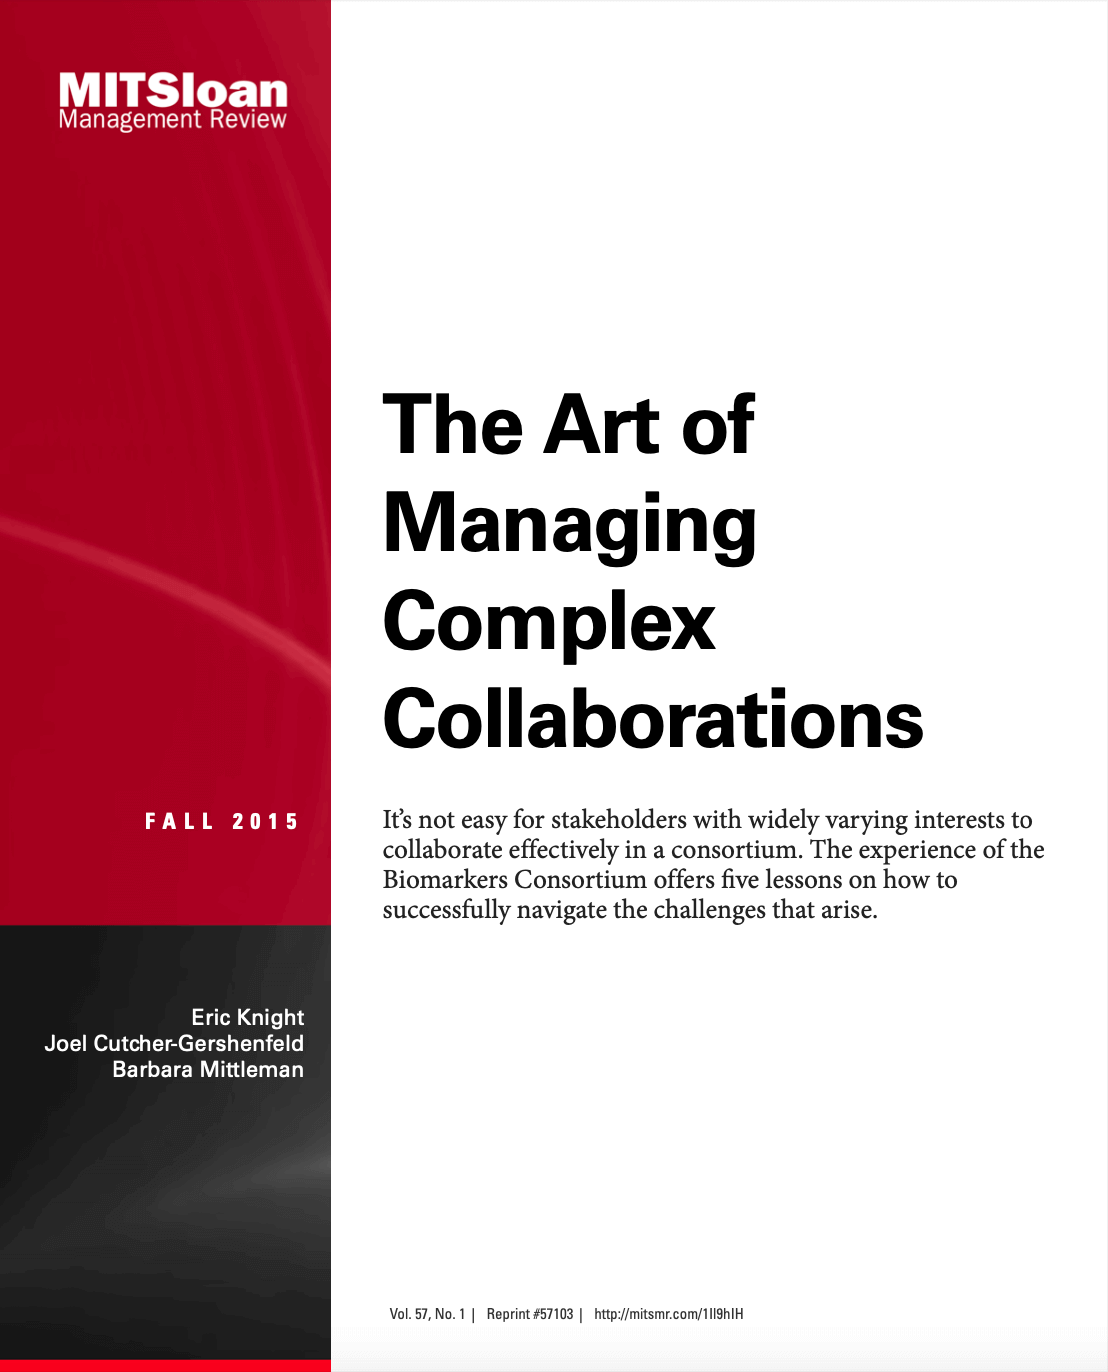 The art of managing complex collaborations